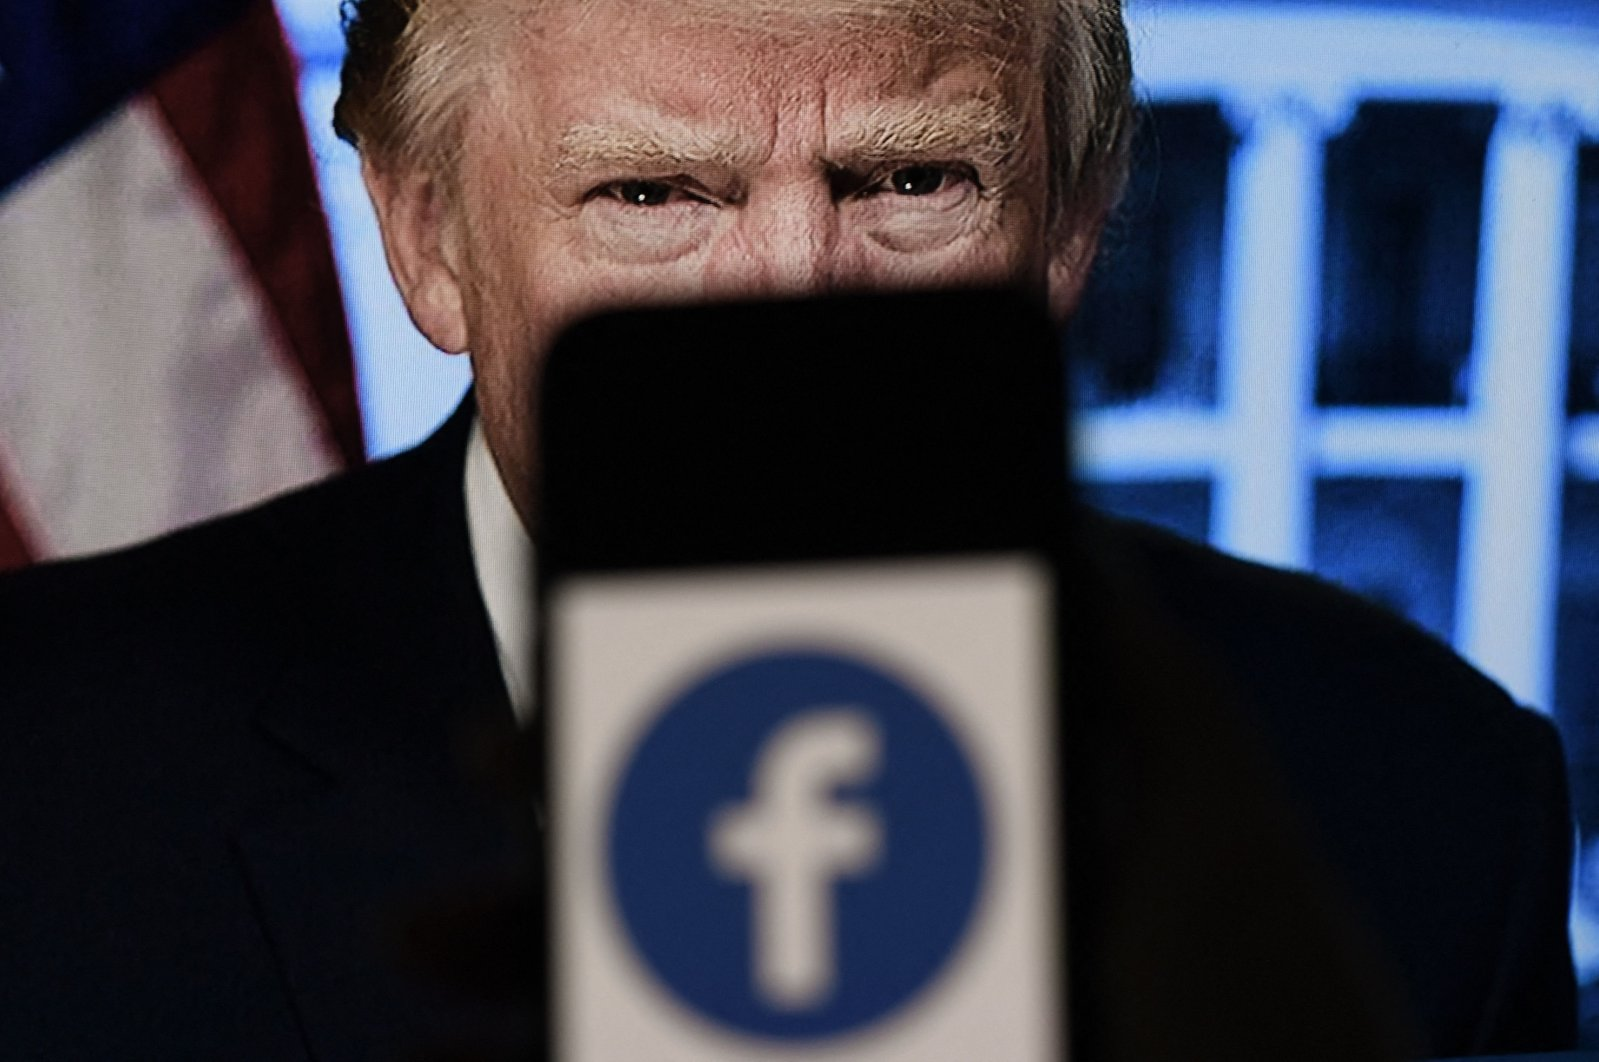 In this file photo illustration, a phone screen displays a Facebook logo with the official portrait of former US President Donald Trump in the background, Arlington, Virginia, on May 4, 2021. (AFP Photo)